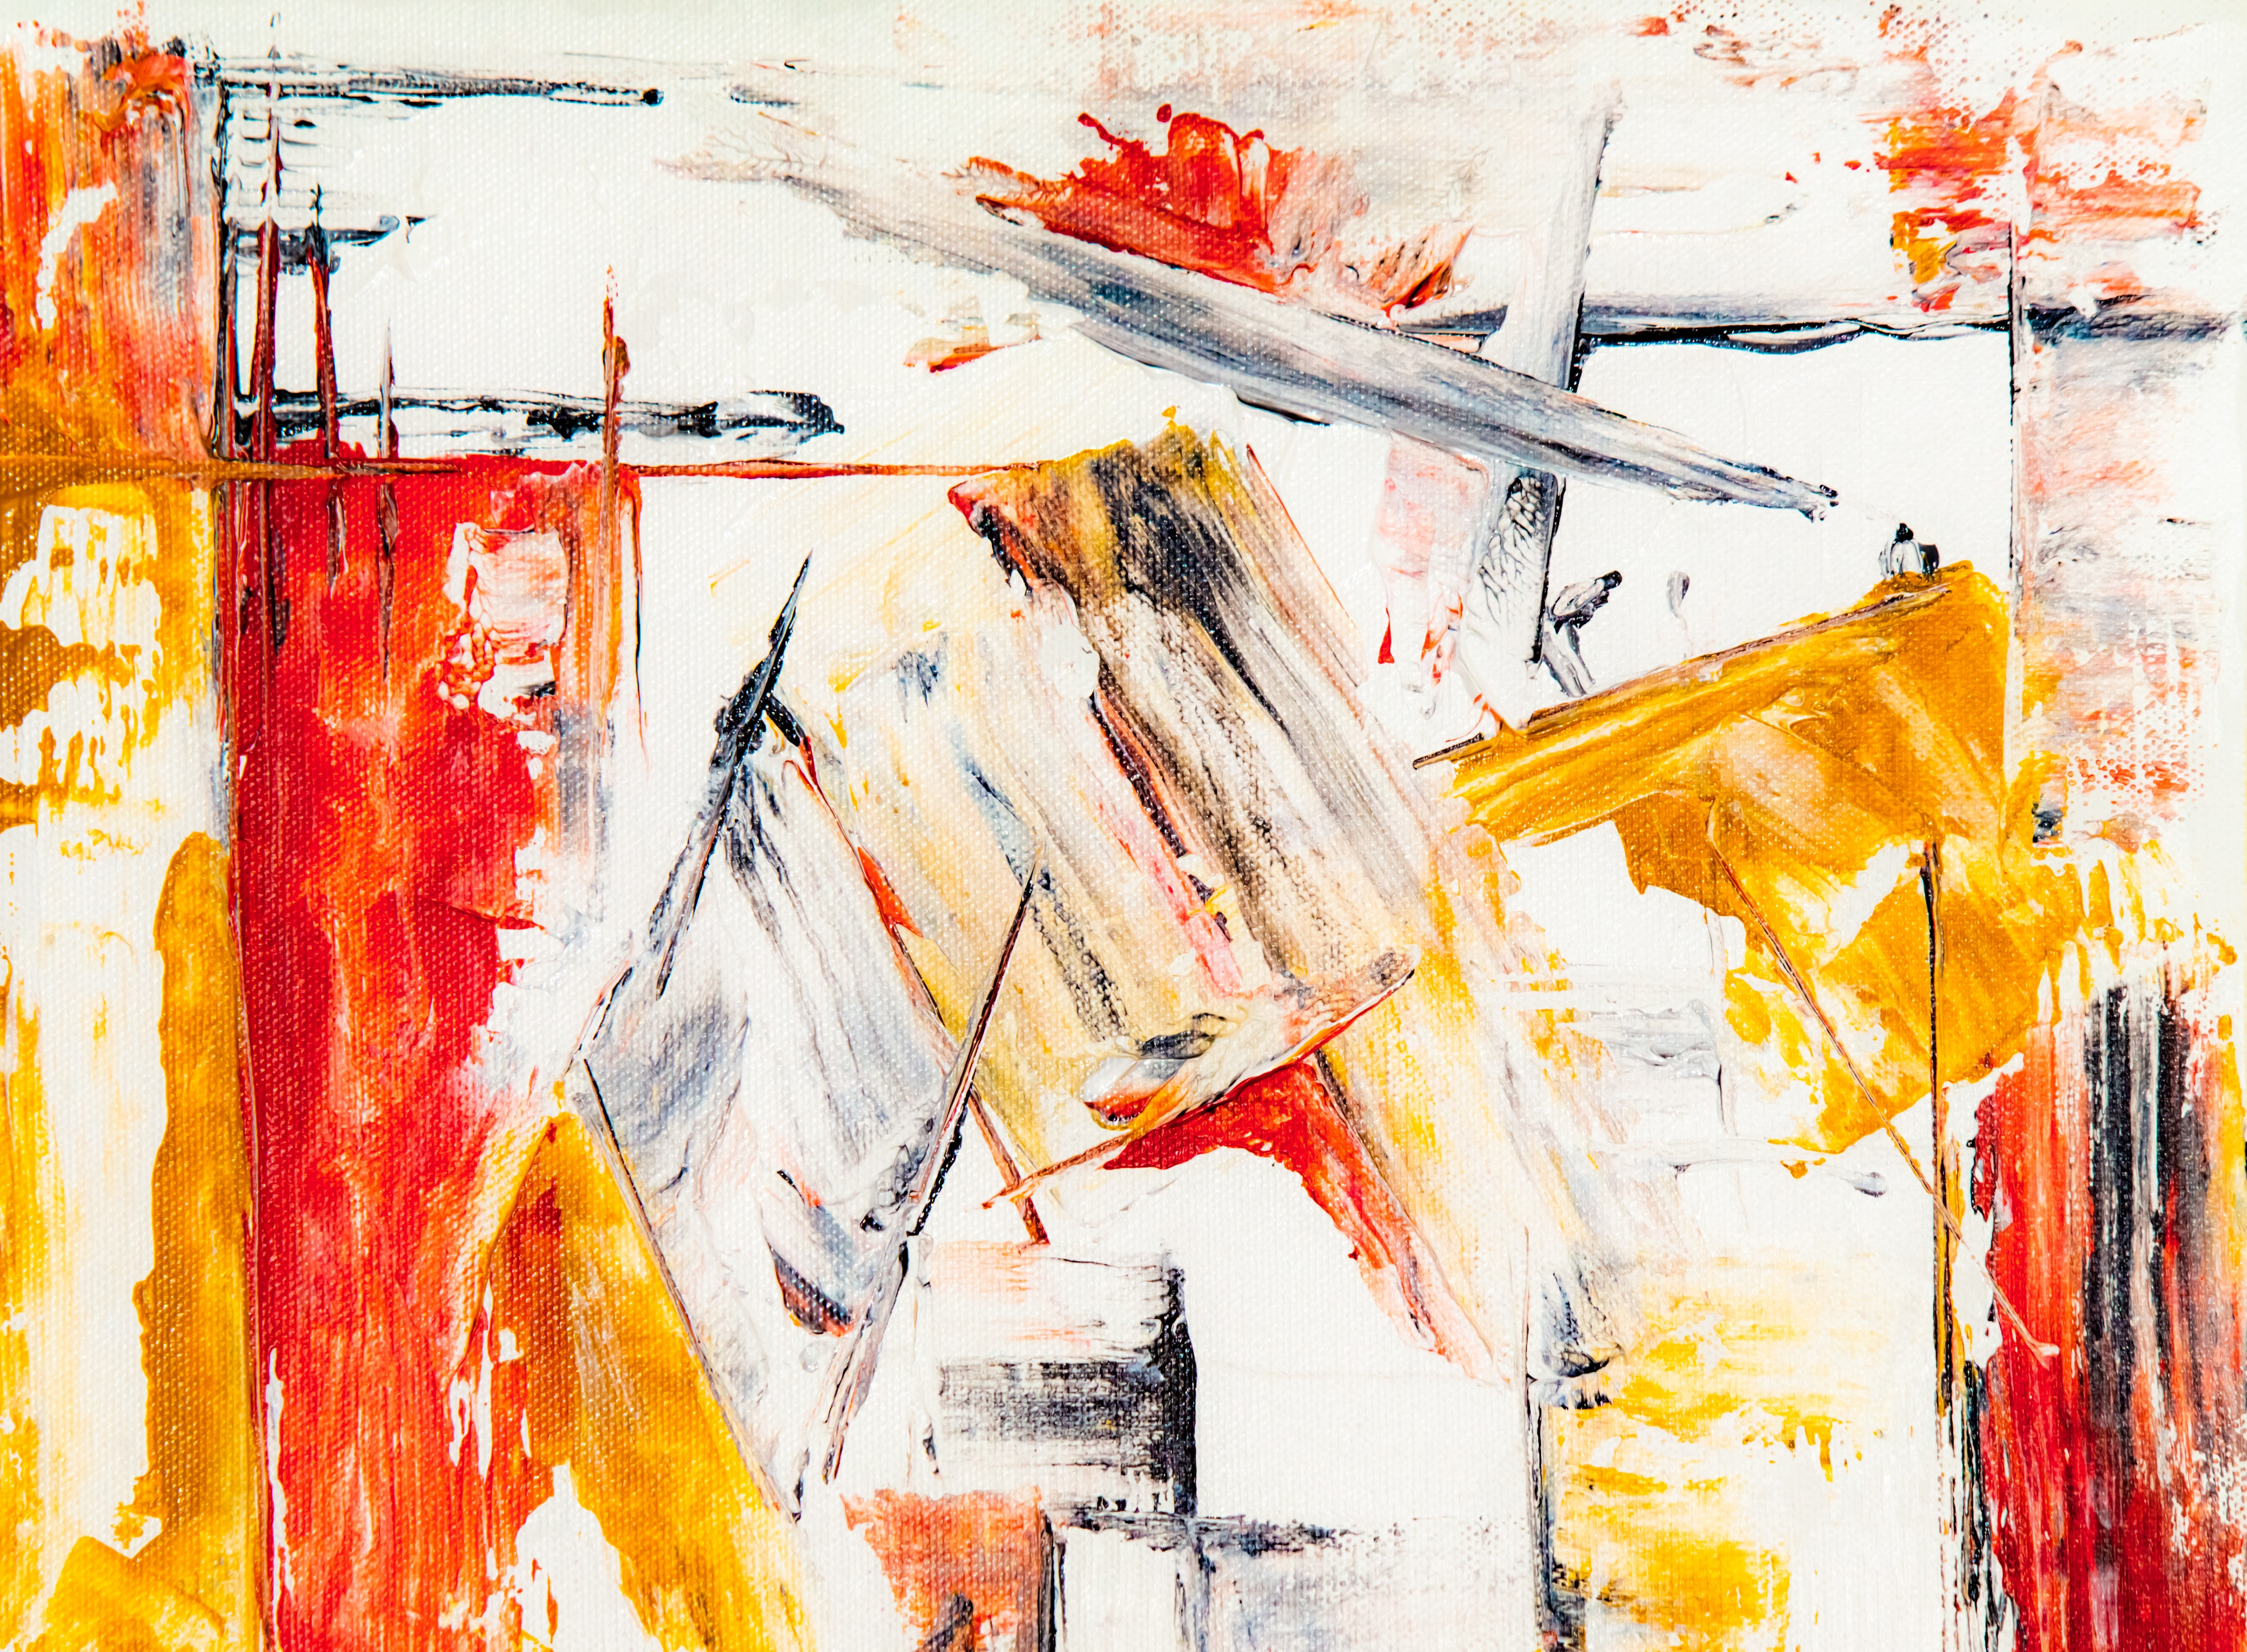 white, yellow, and red abstract painting